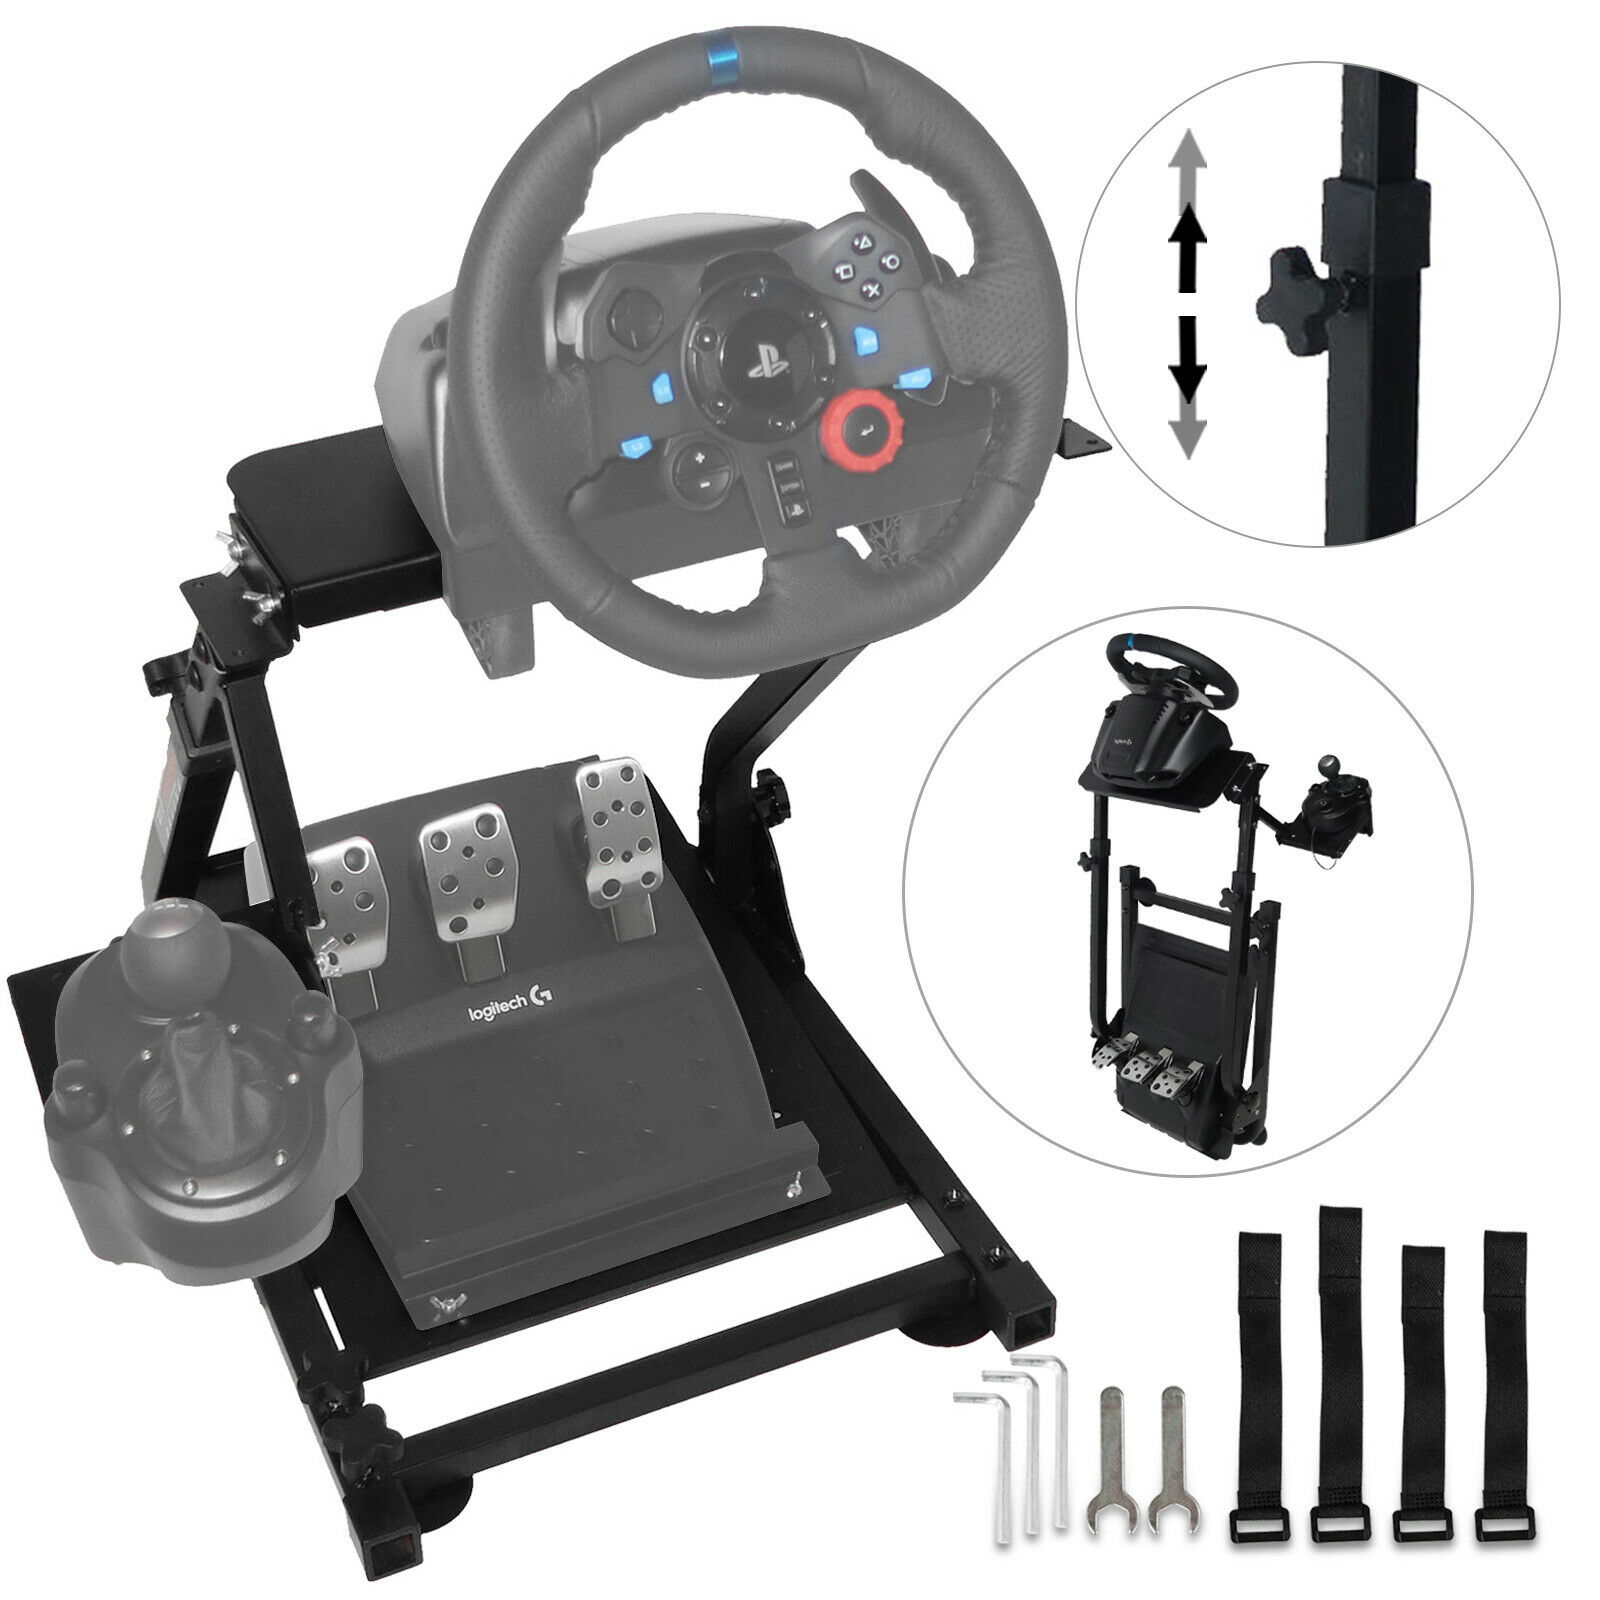 Steering Wheel Holder Universal Folding Steering Wheel Mount G25 G27 G29 and G920 Wheel Stand Pro Compatible with Logitech G25